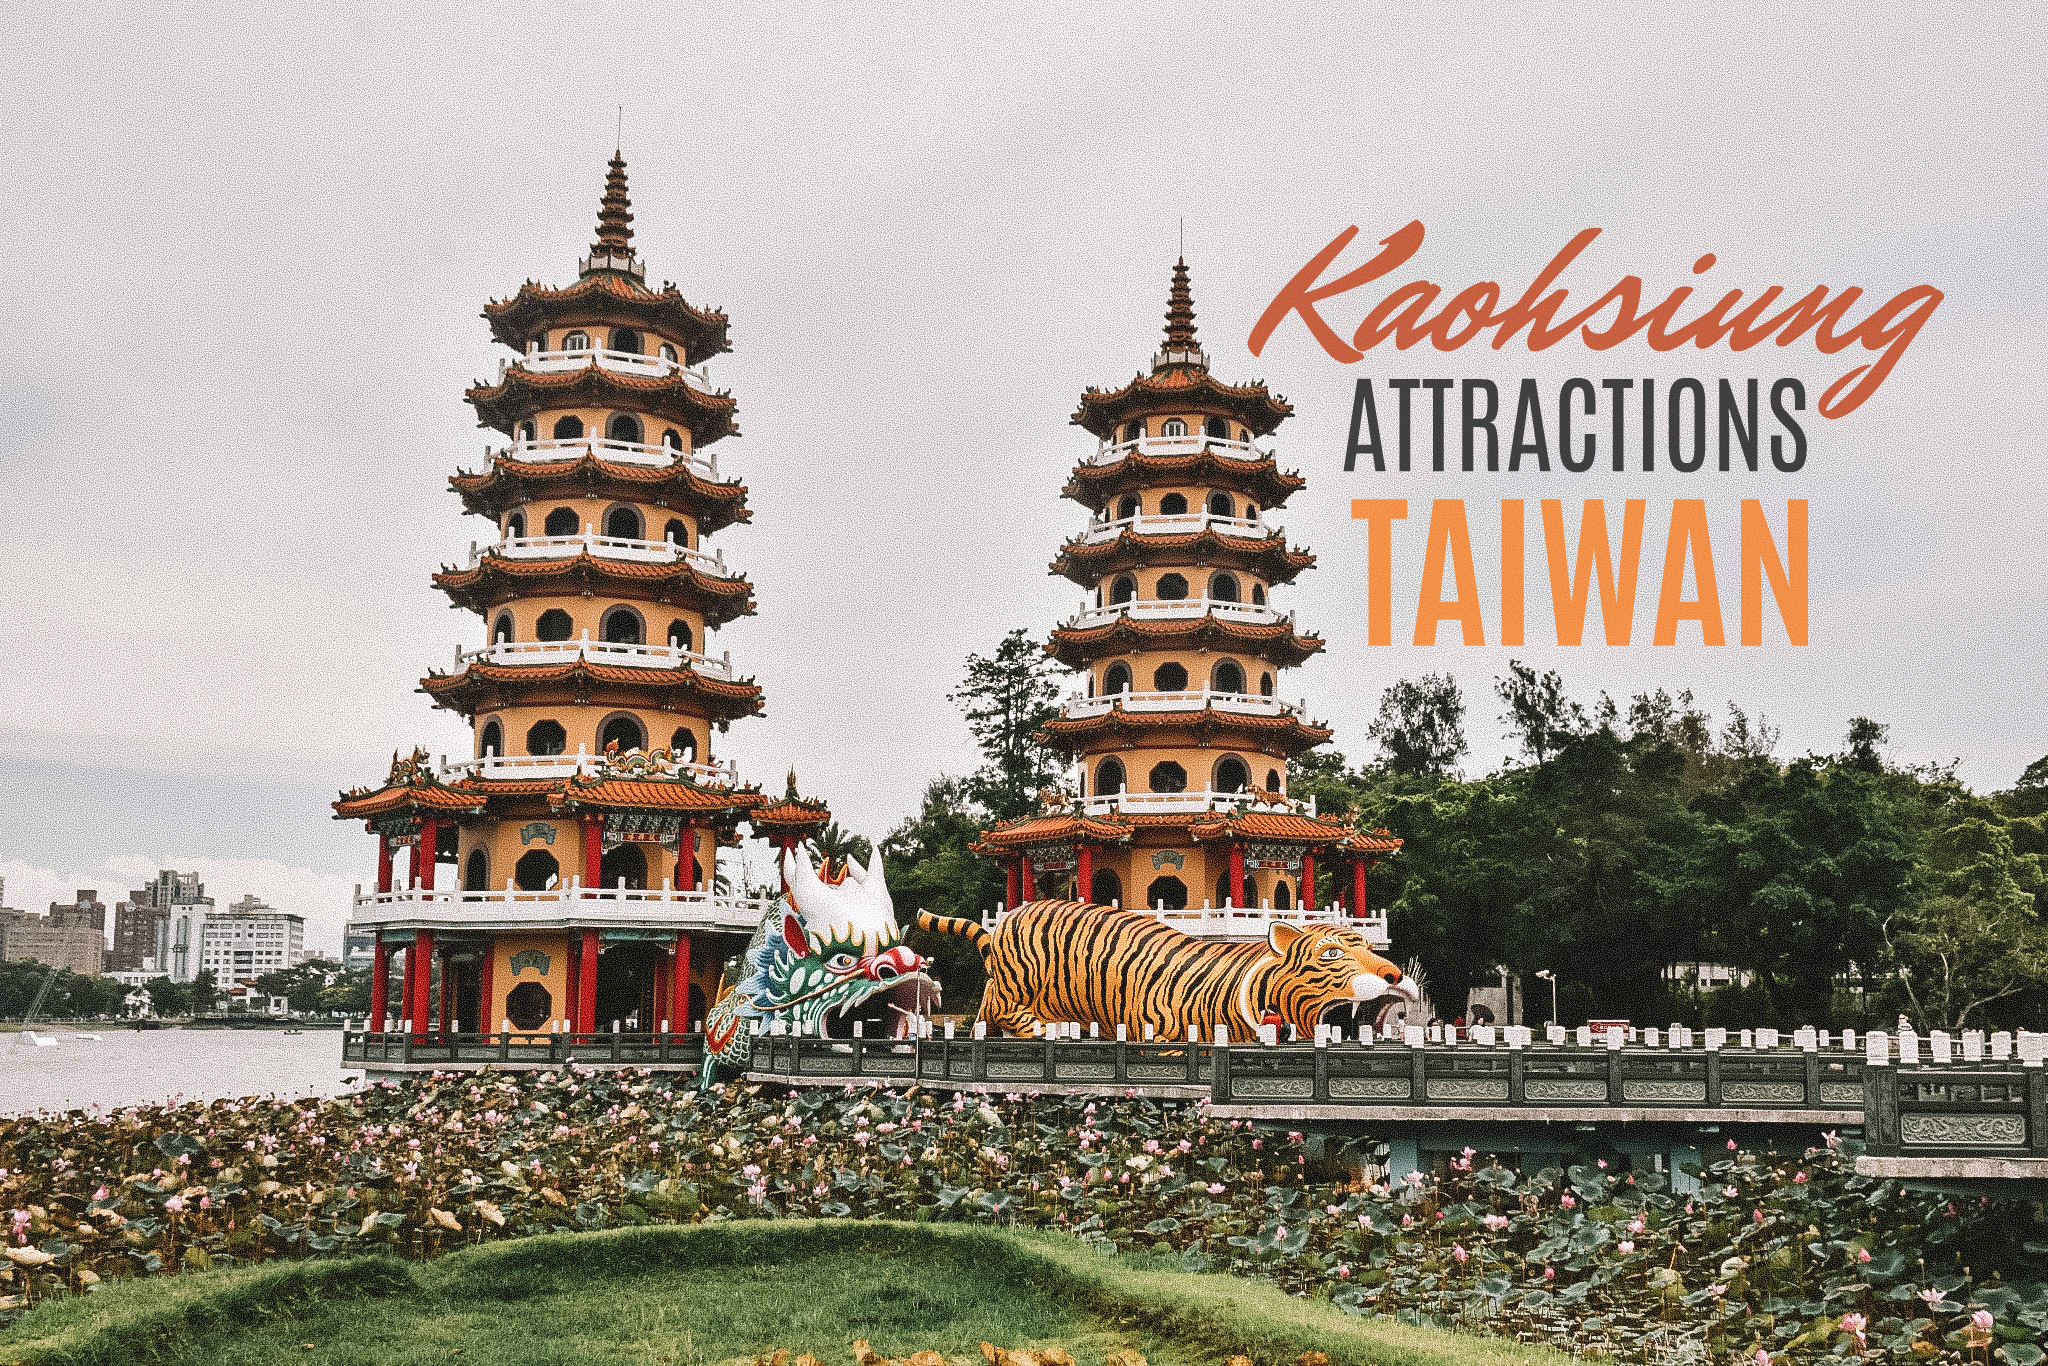 TAIWAN: 10 FREE Attractions in Kaohsiung and How to Get There